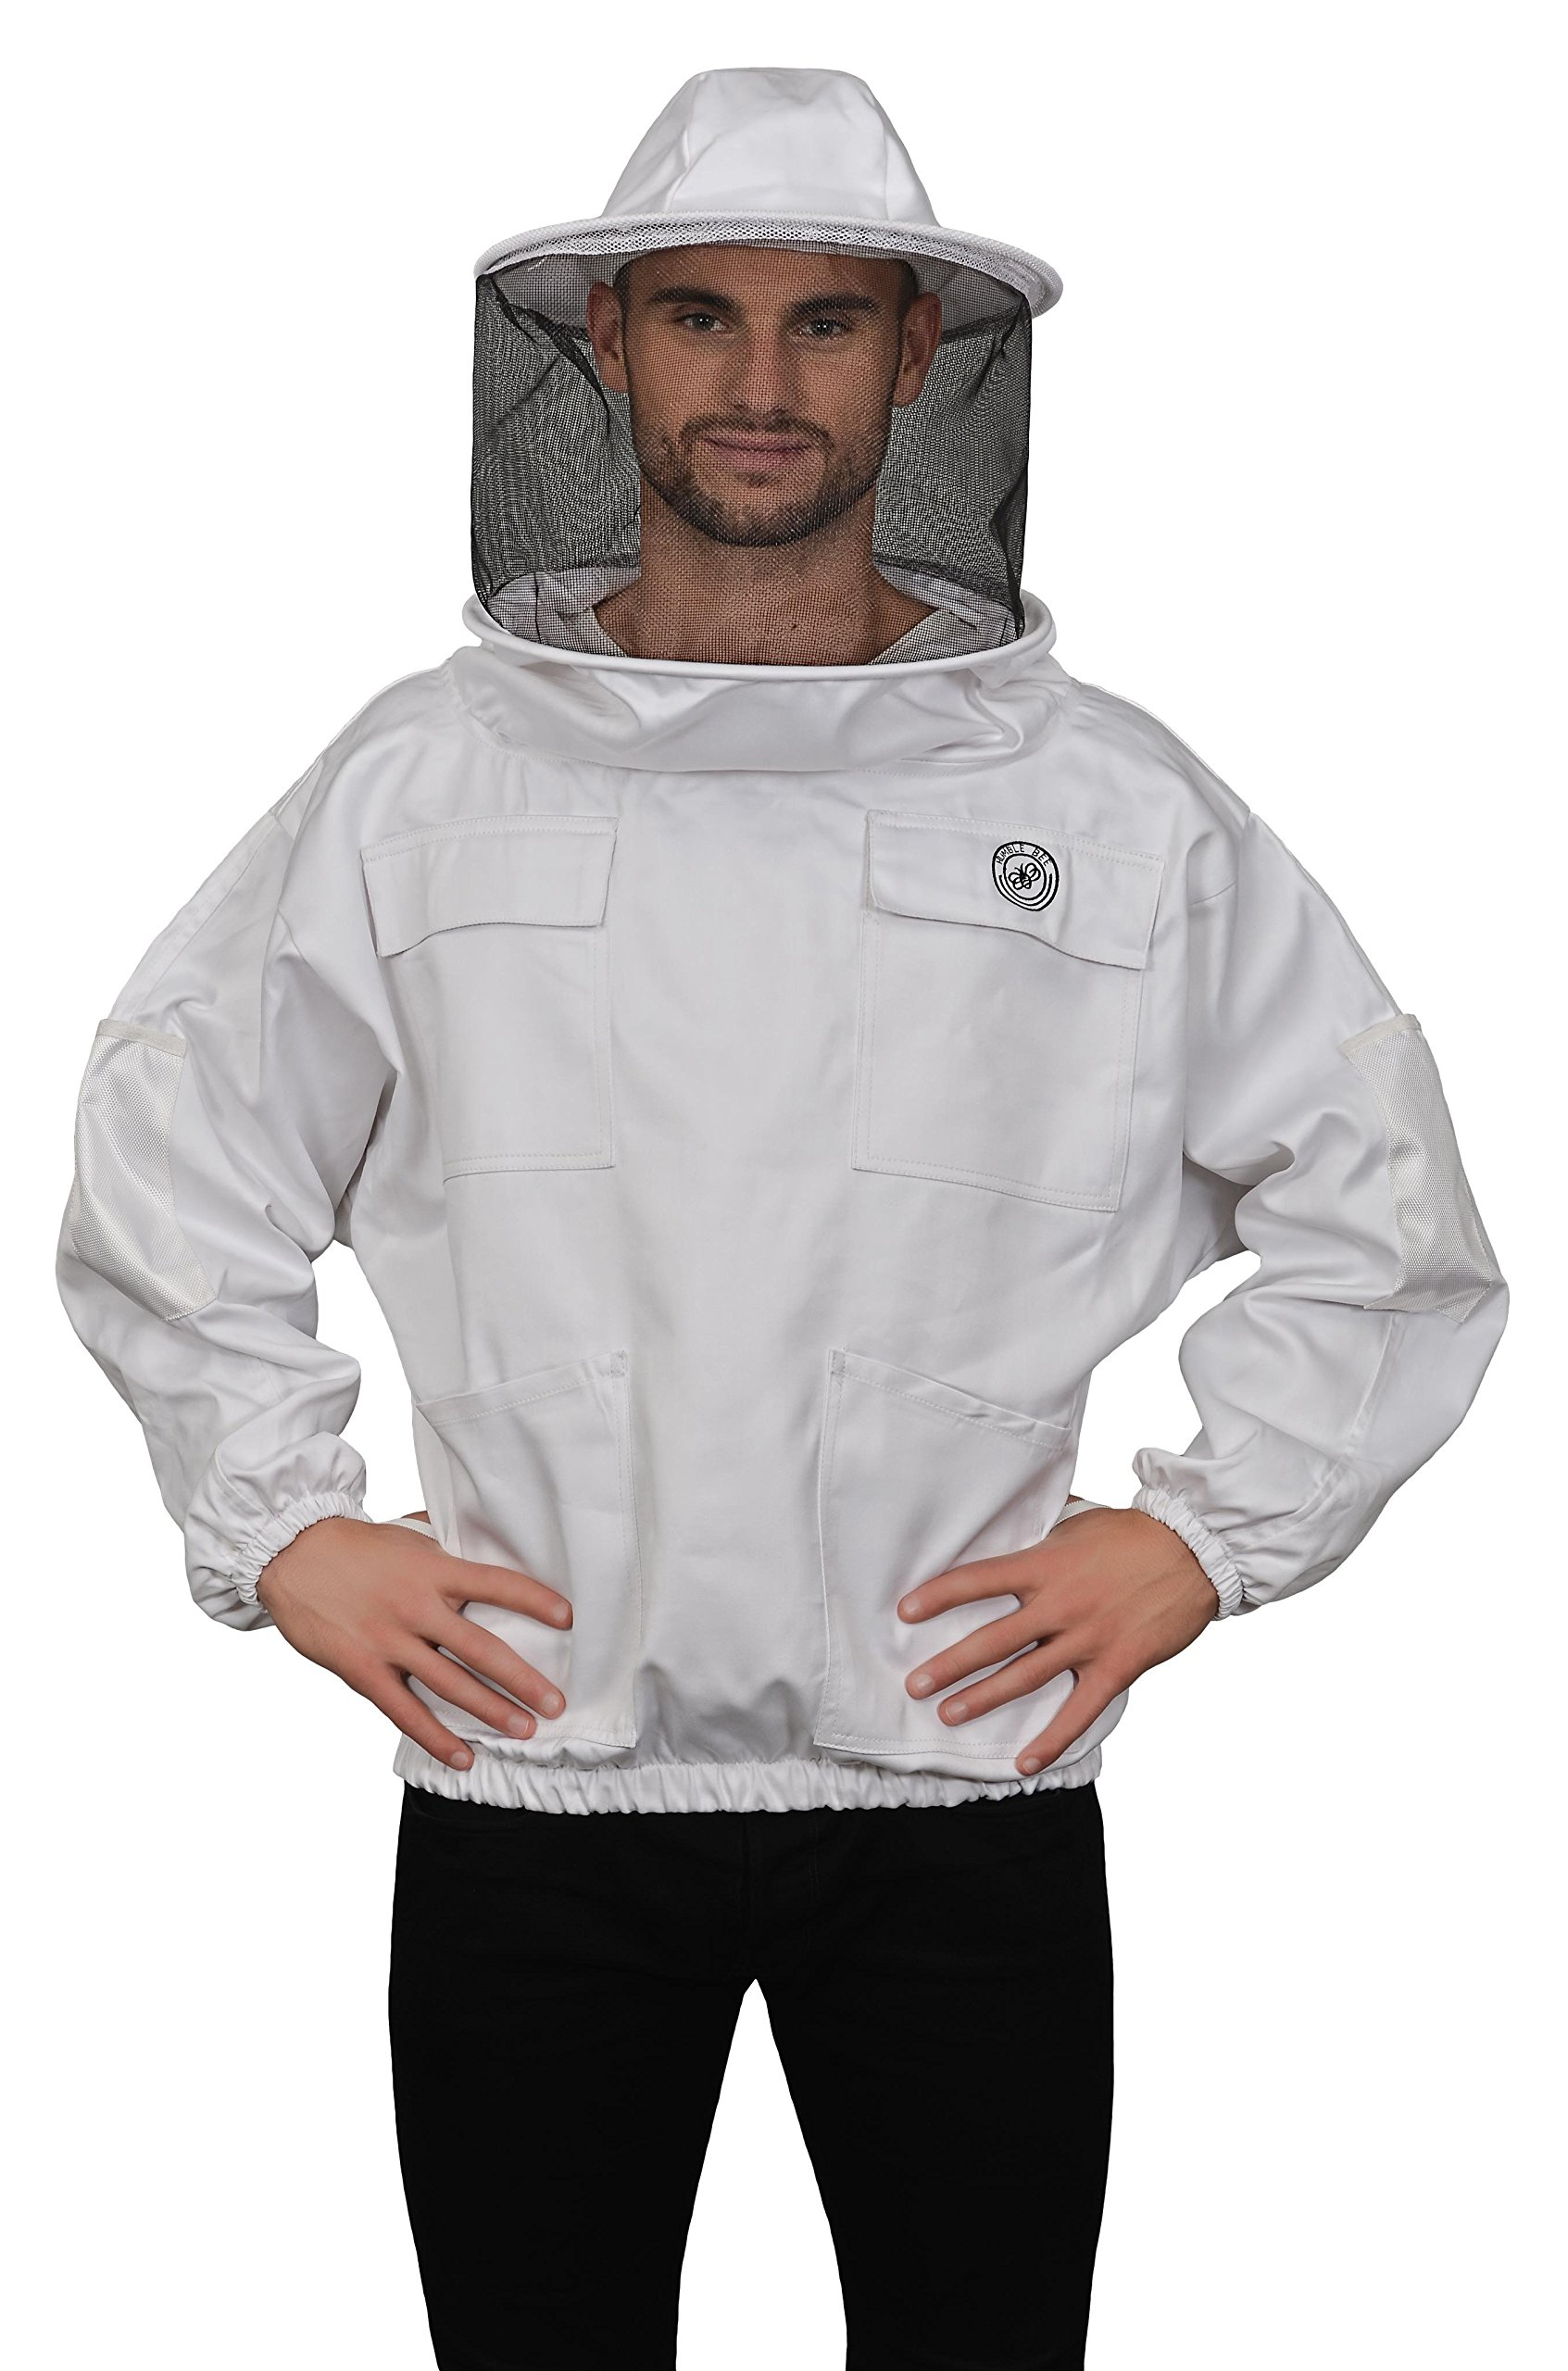 Humble Bee 510-L Polycotton Beekeeping Smock with Round Veil (Large) by Humble Bee